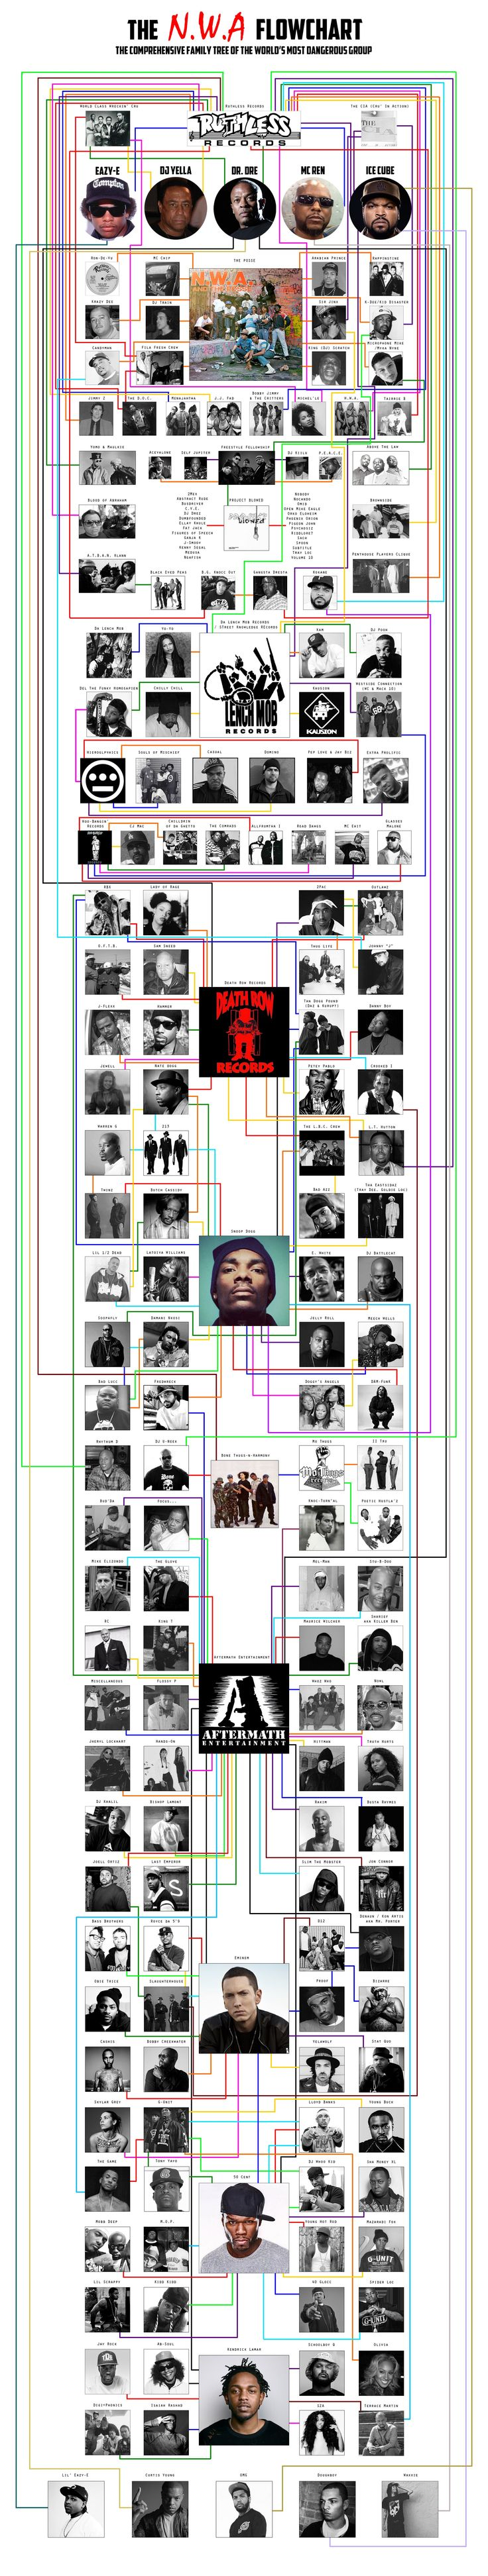 The N.W.A Flowchart — Cuepoint — Medium